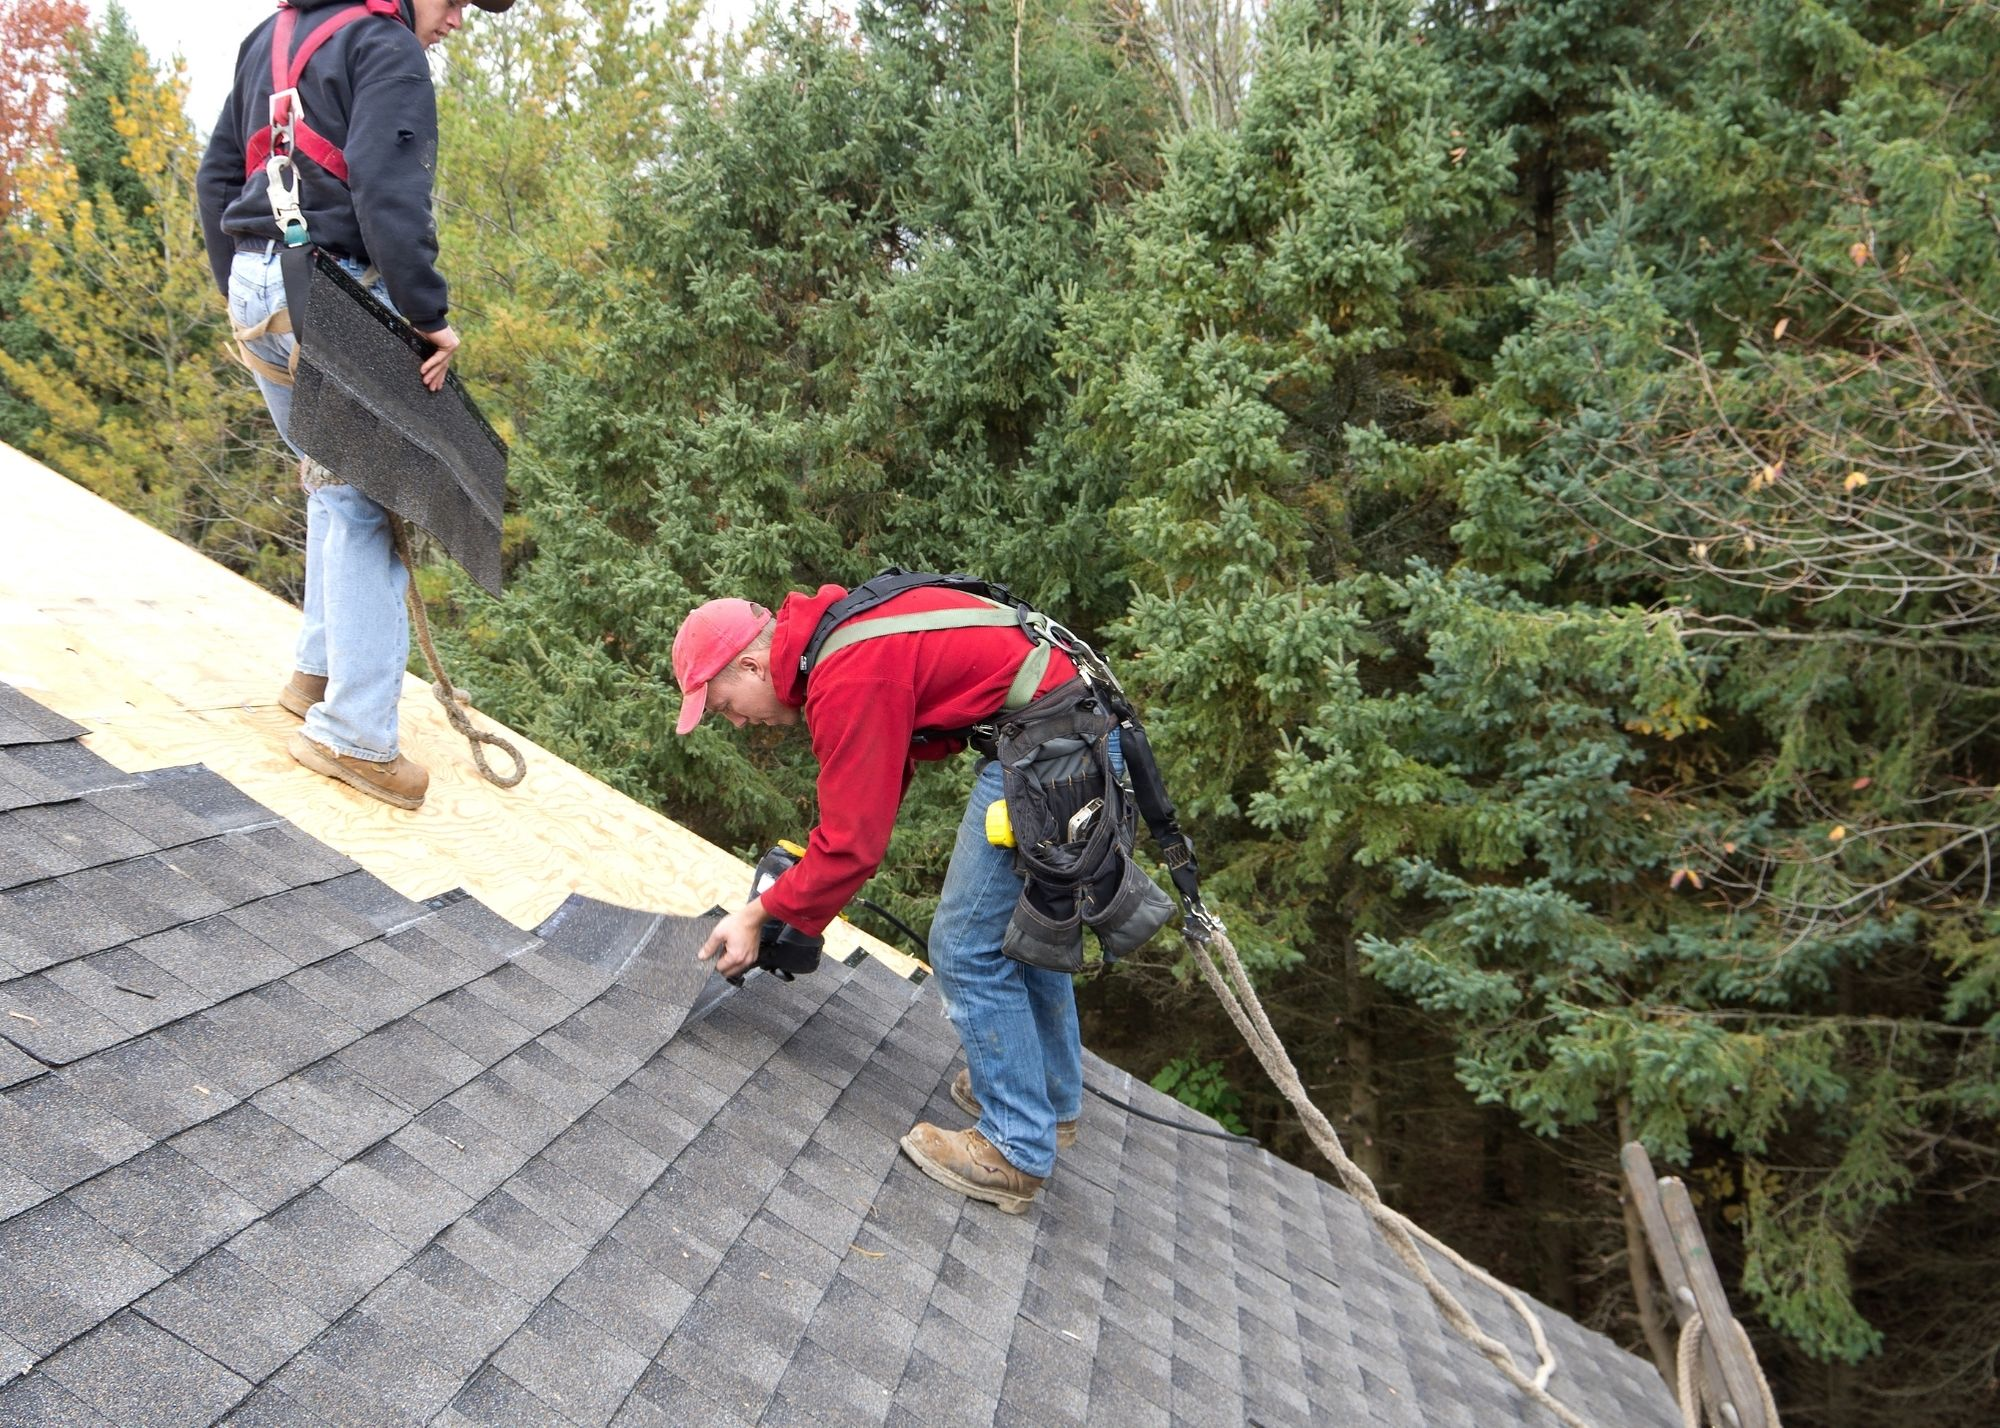 https://www.roofing-columbus.com/when-do-i-need-a-new-roof/